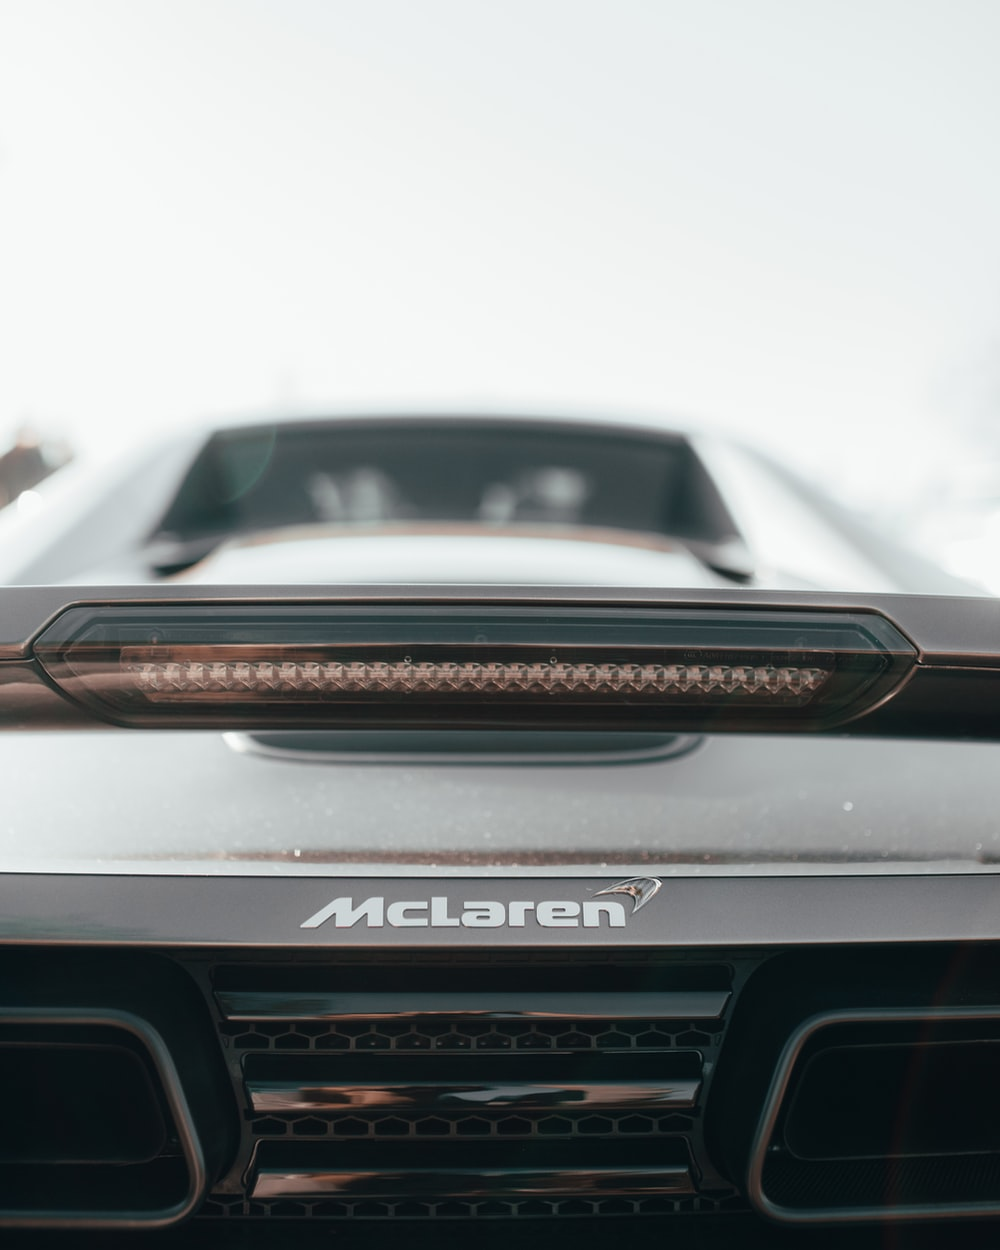 selective focus photography of black Mclaren vehicle